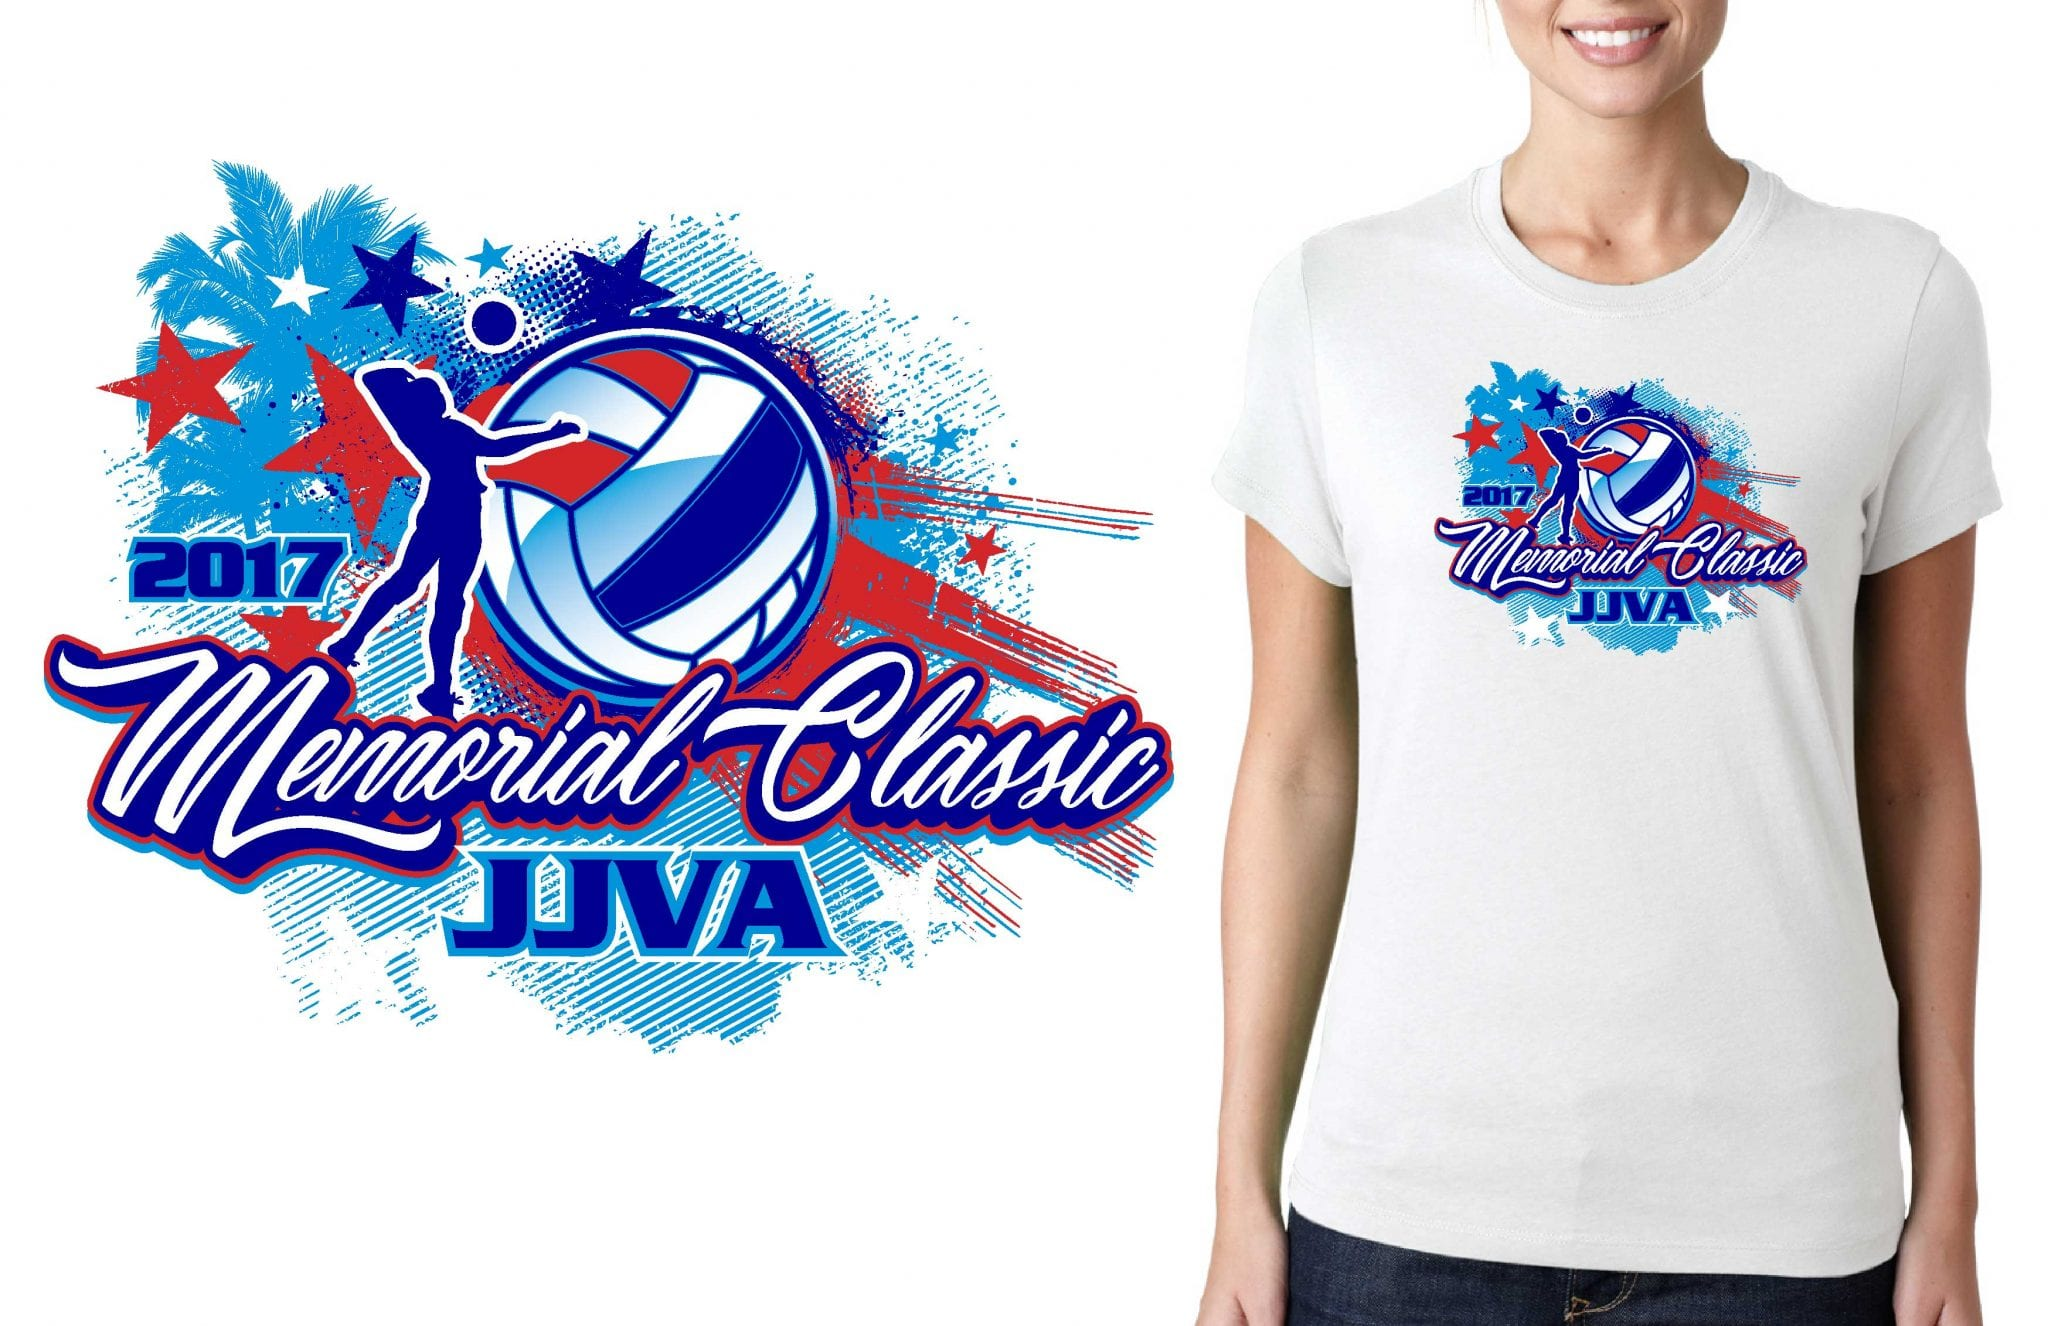 2017 Memorial Classic vector logo design for volleyball t-shirt UrArtStudio